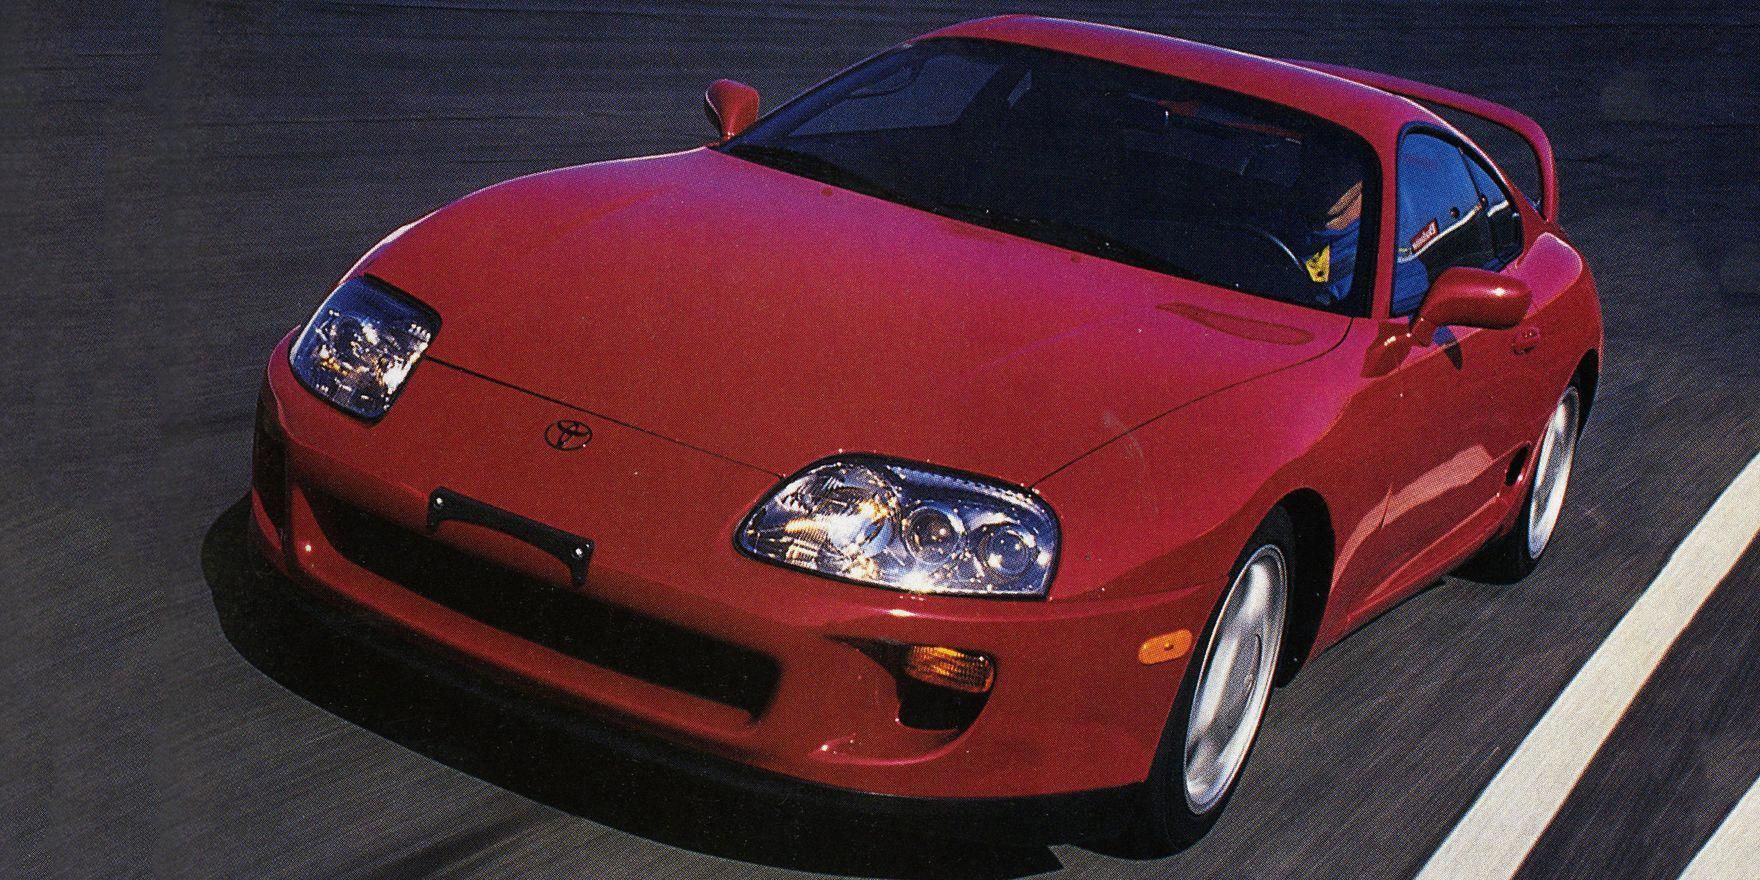 Toyota Supra Turbo (A80) (1993) Need for Speed (1994